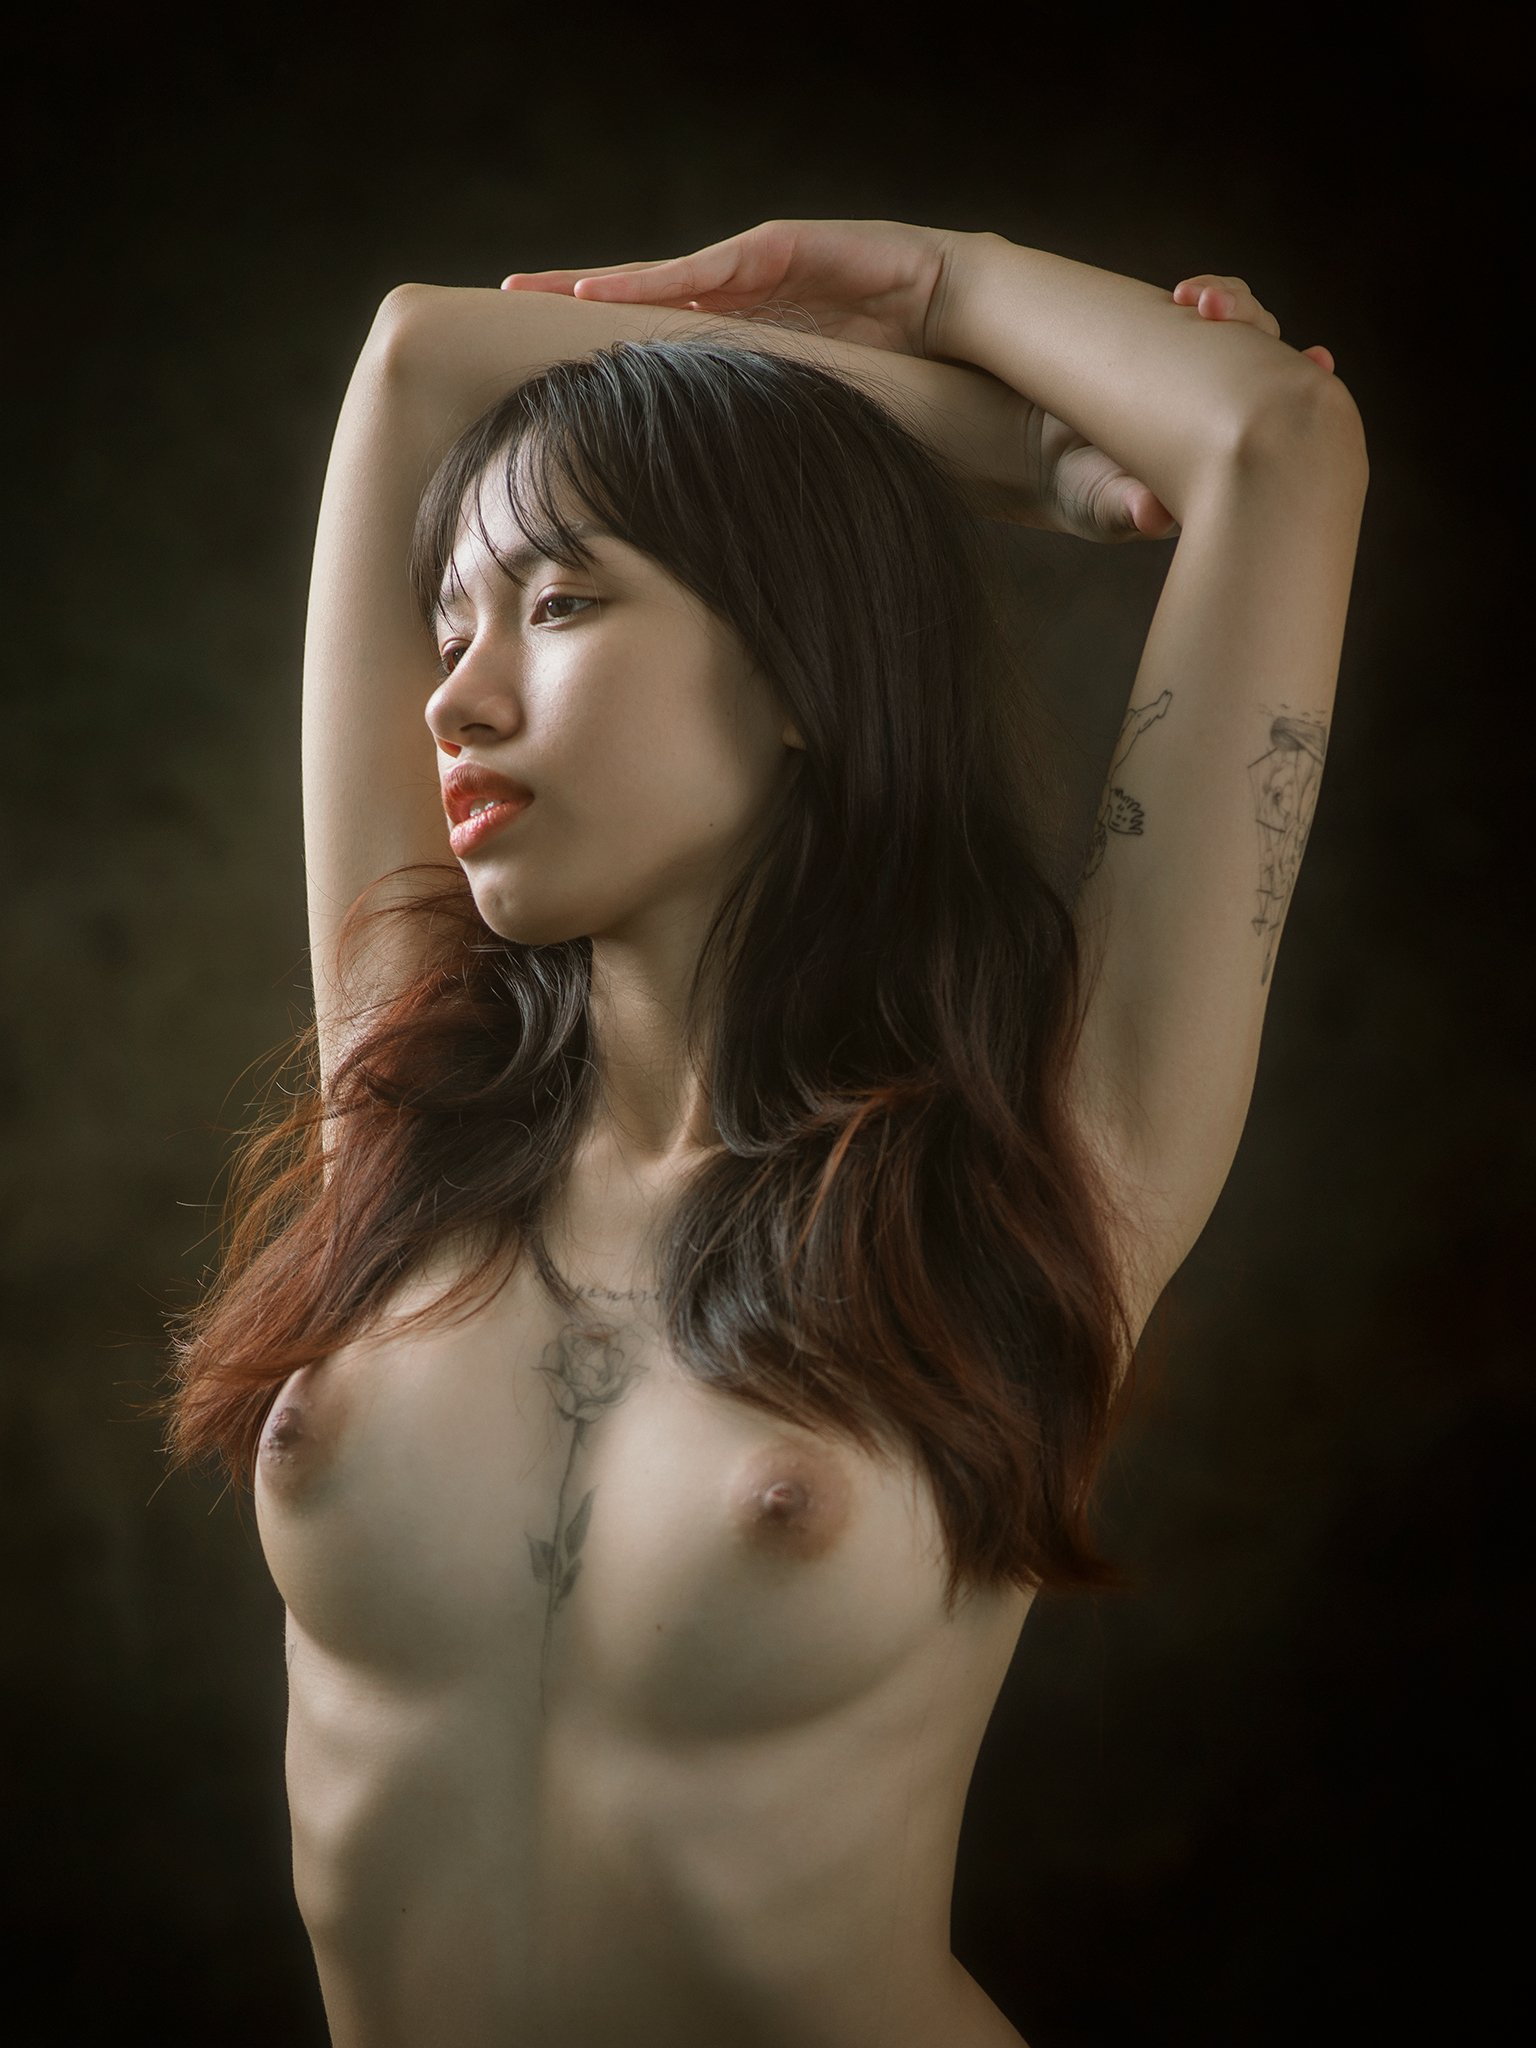 portrait, female, woman, girl, asian, vietnam, vietnamese, young, beauty, glamour, nude, fine nude, light, studio, Hoang Viet Nguyen